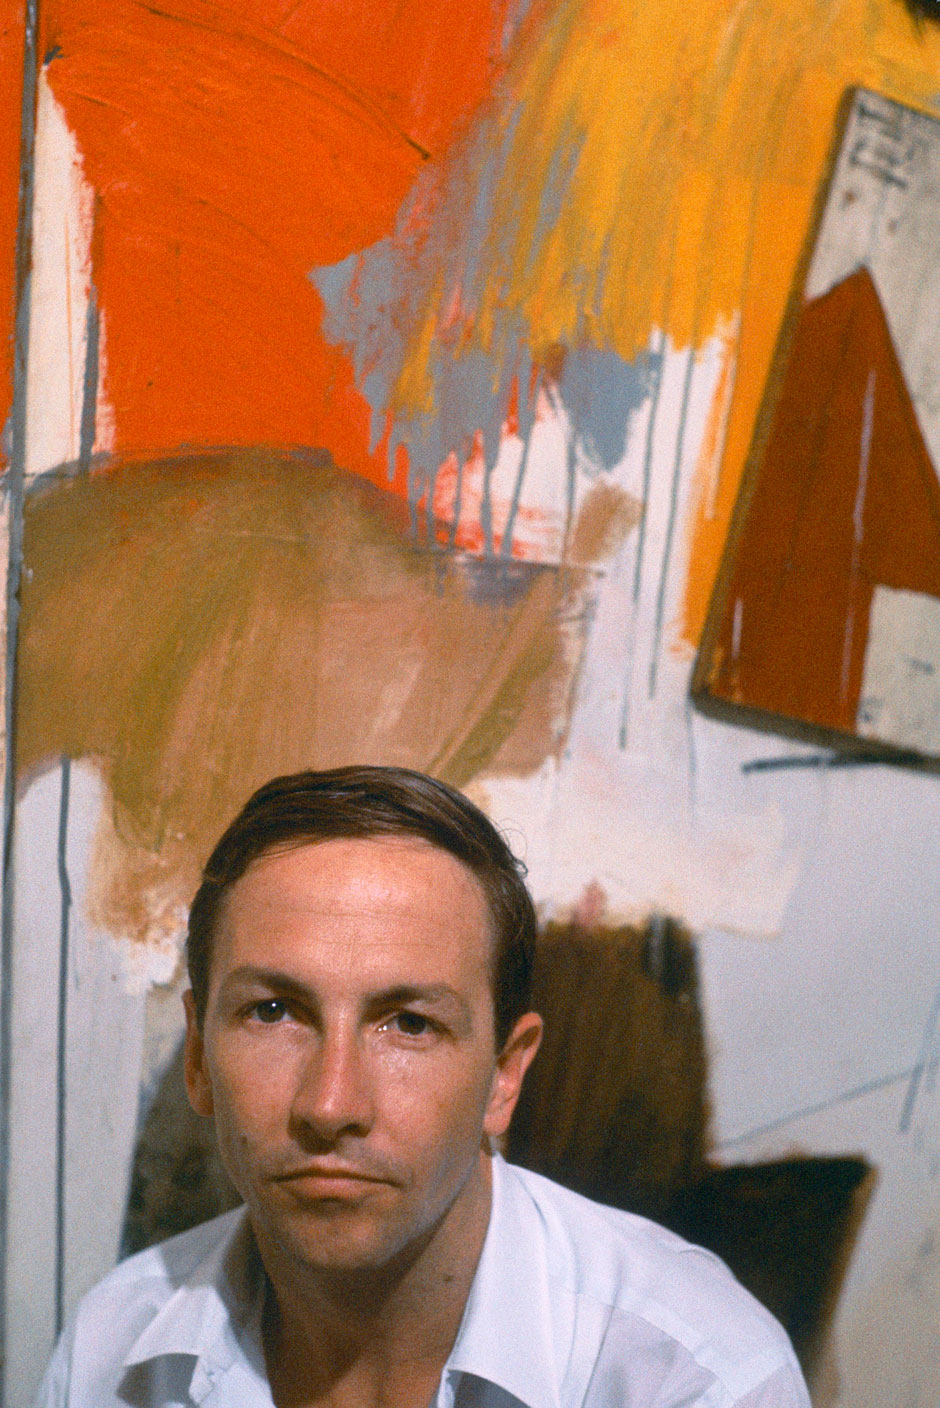 robert rauschenberg essay Robert rauschenberg and jasper johns sought to subvert the myth of the artist as visionary creator in doing so they anticipated the pop art movement.